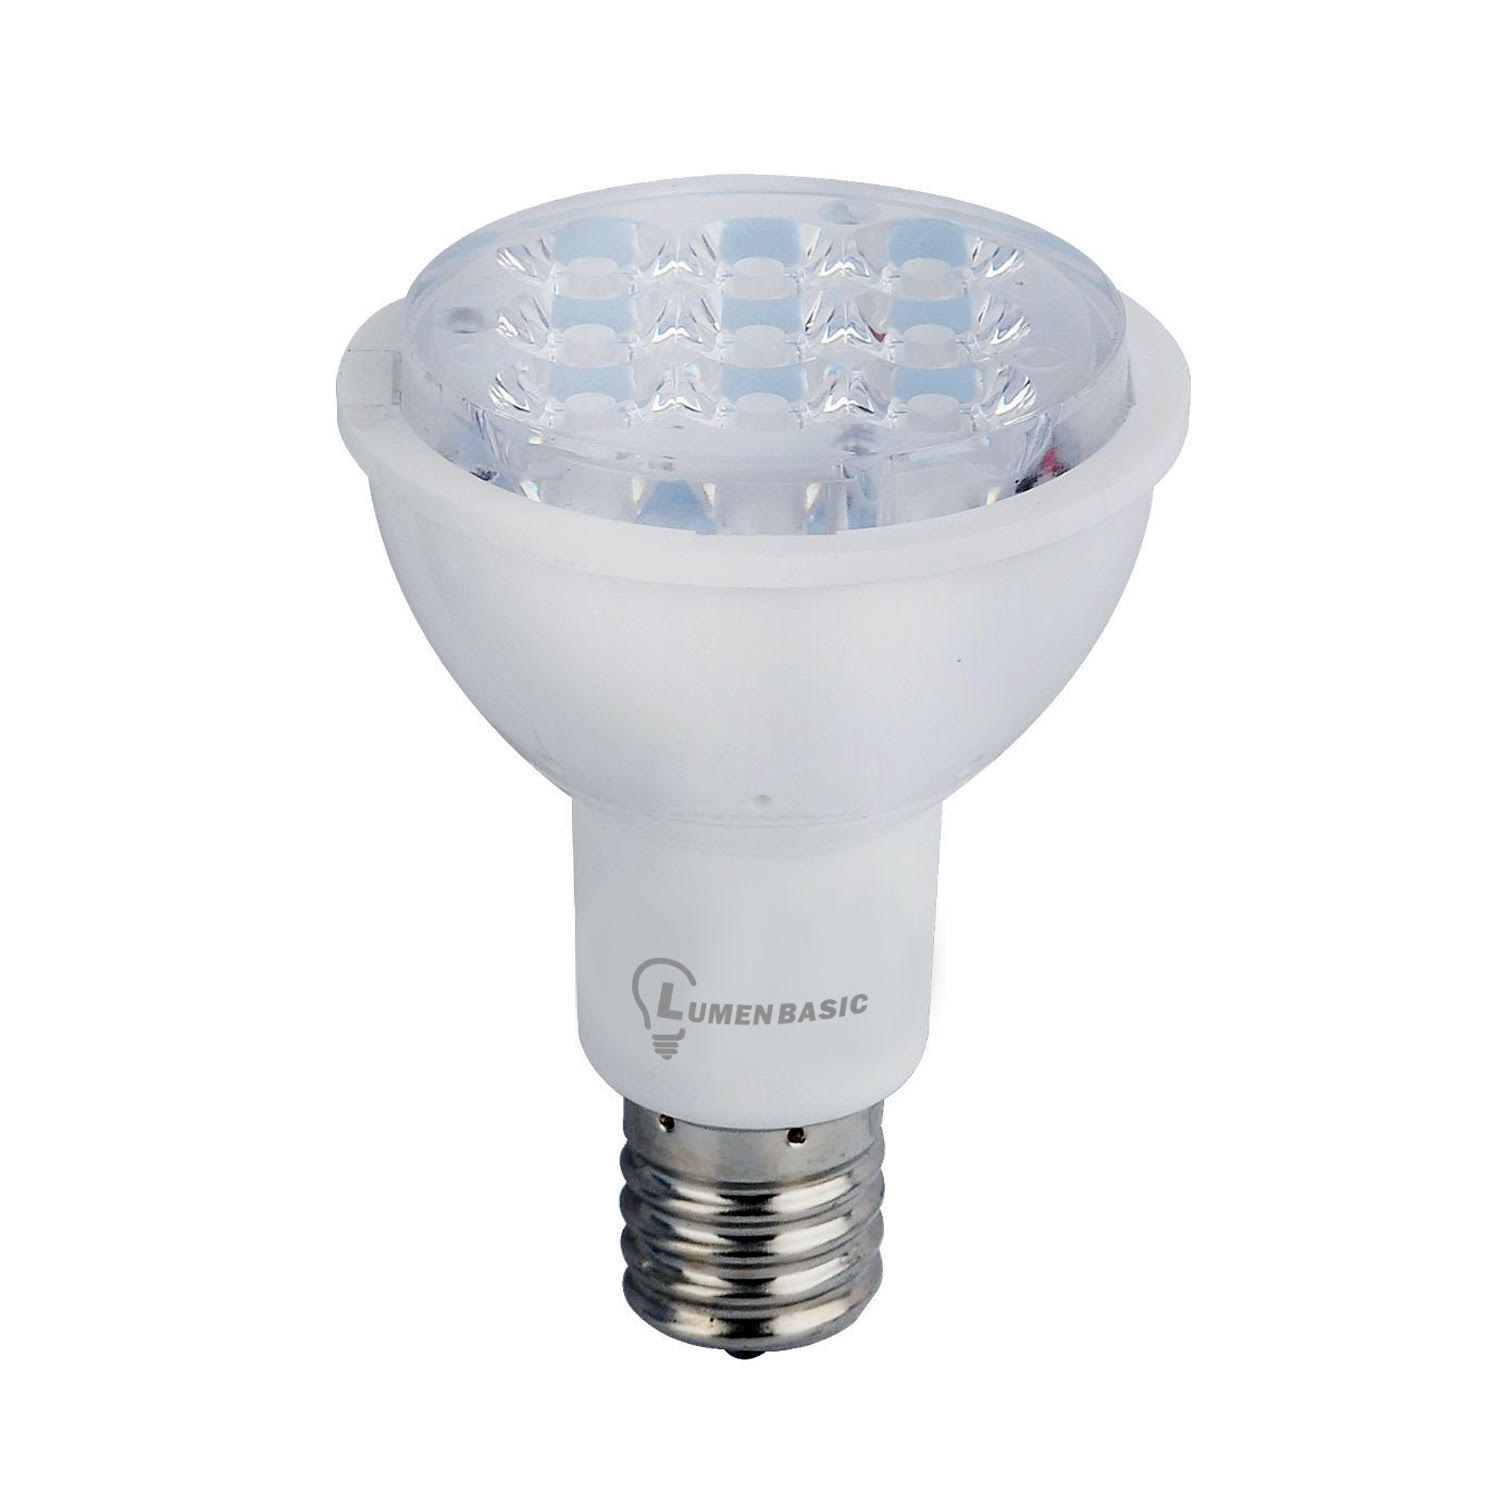 Lumenbasic 4w Daylight White Led Light Dimmable E17 Bulb R14